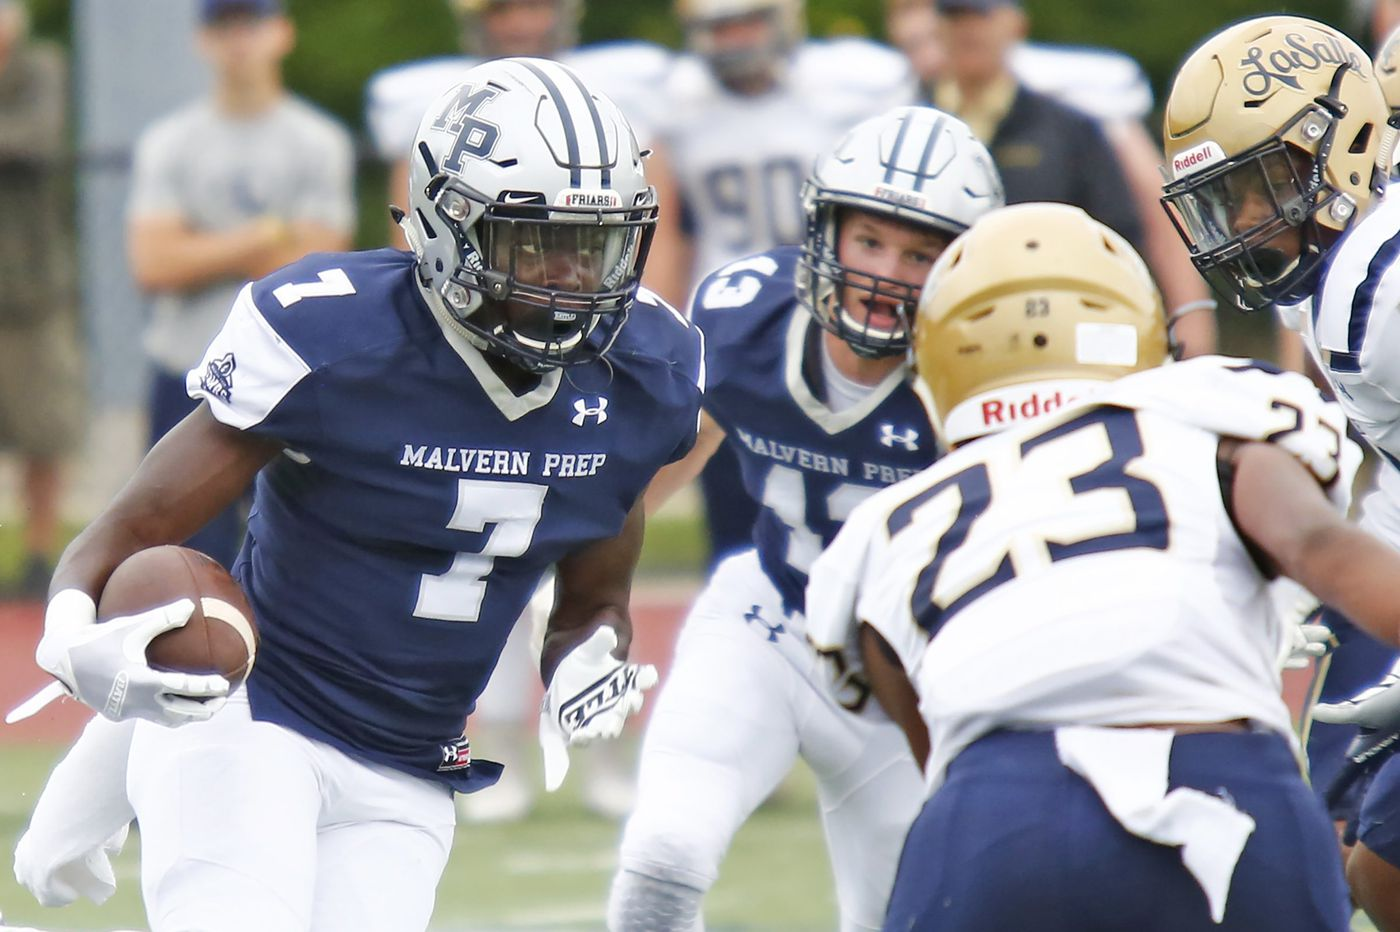 TyGee Leach and Malvern Prep stay perfect, keep La Salle winless